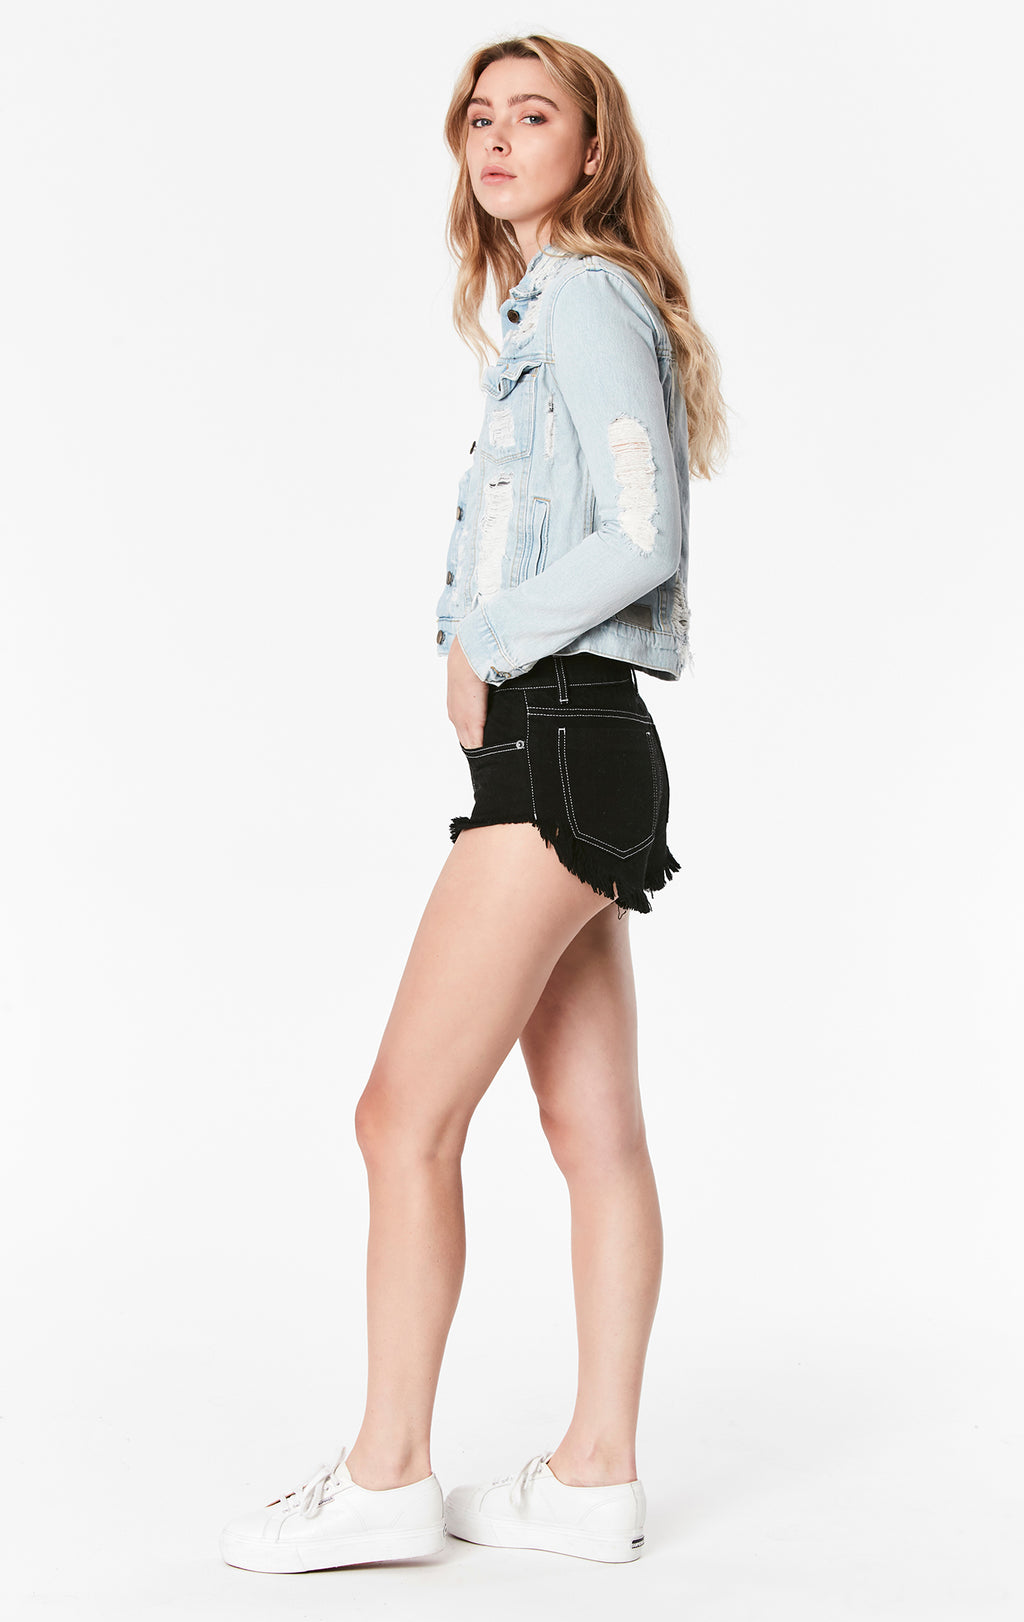 CARINA ROMEO DENIM JACKET